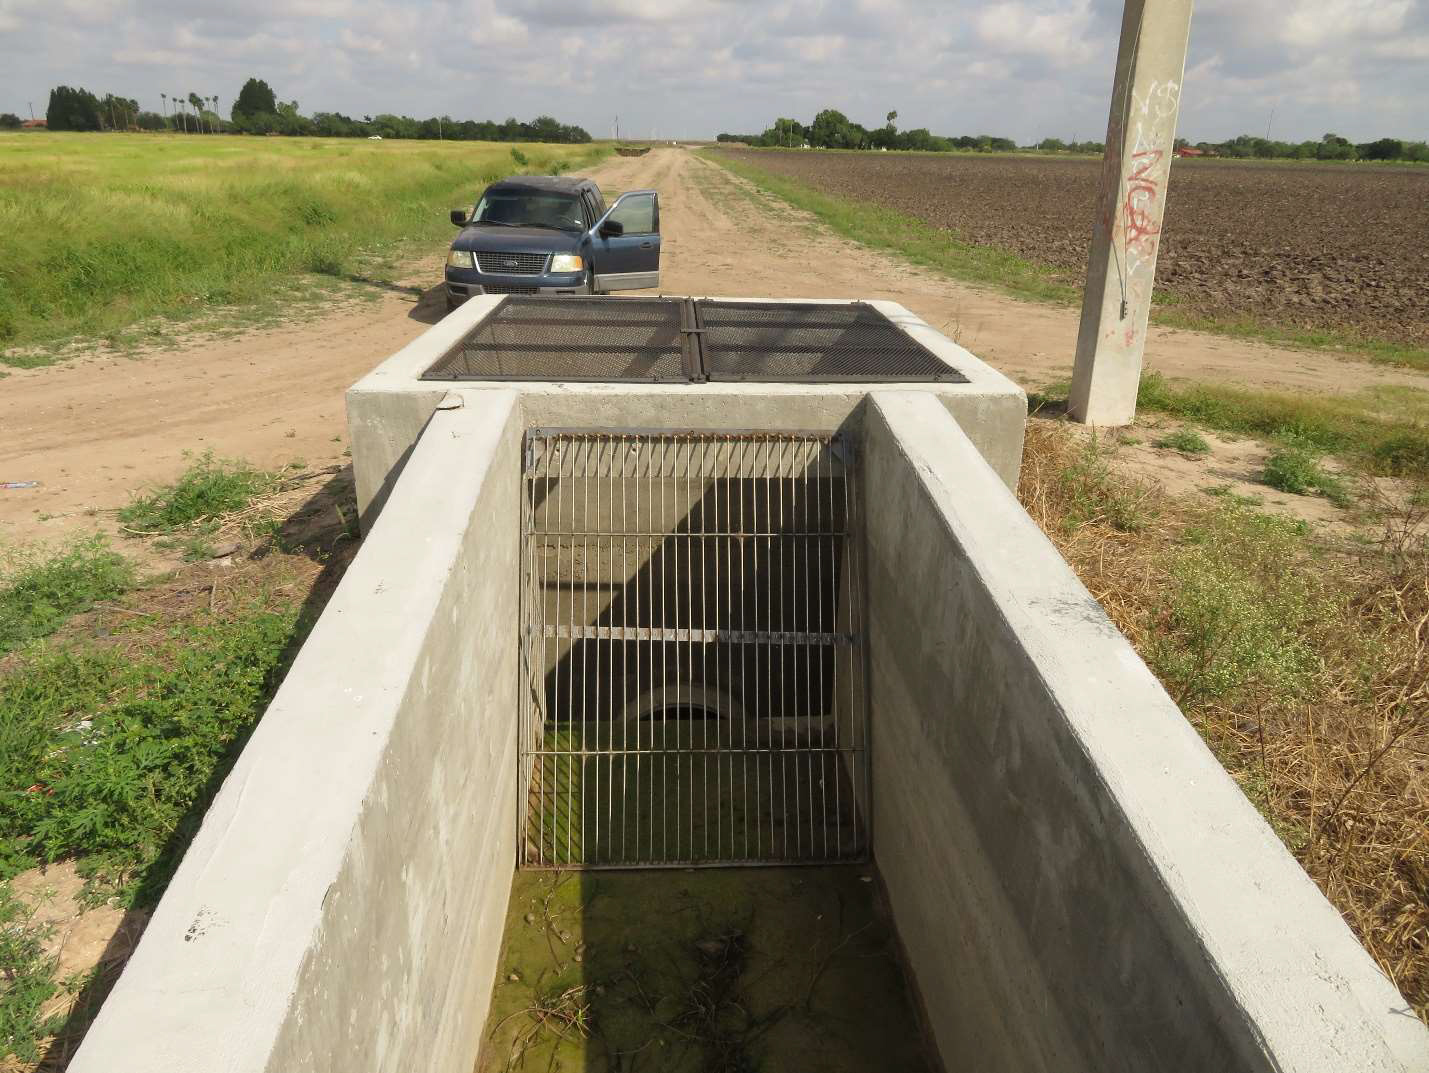 A canal structure and pipe with a grating on it. It is located in agricultural field.